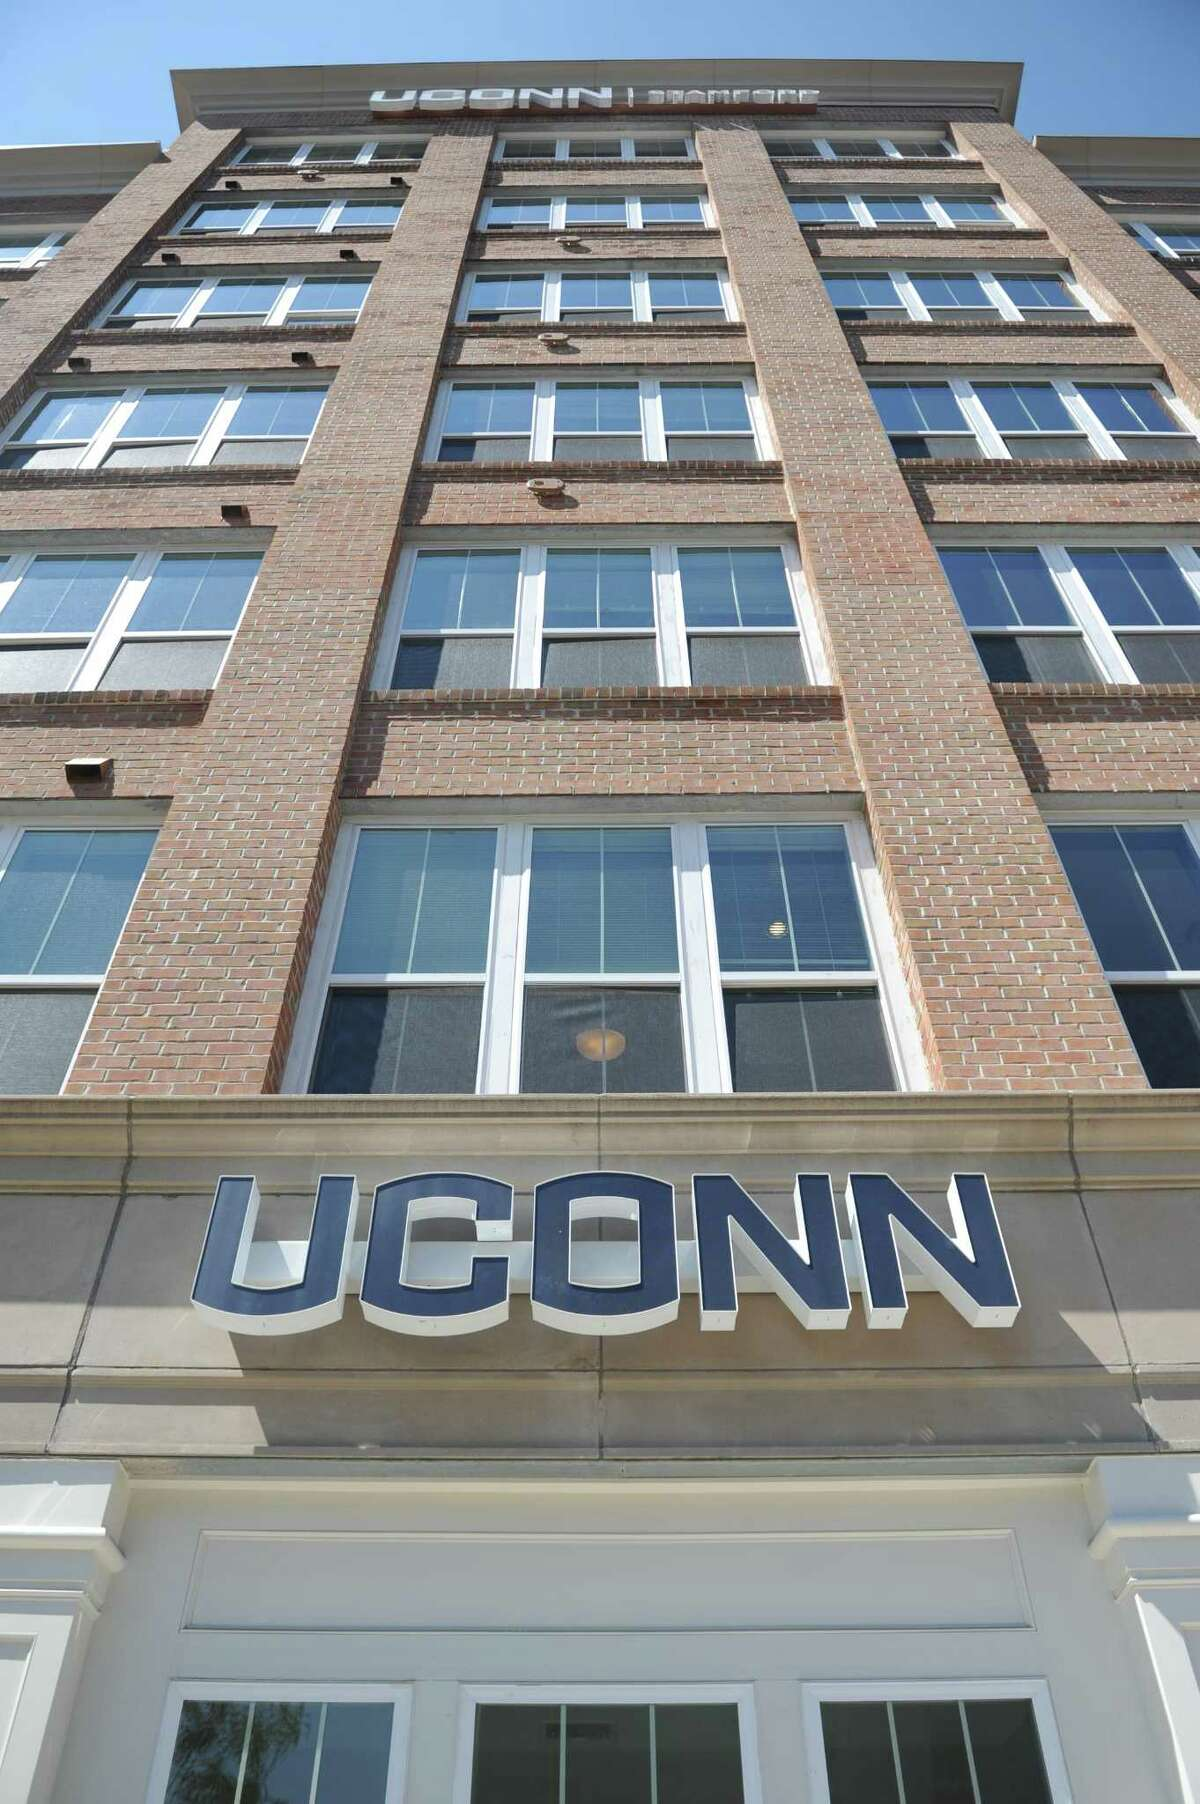 The new UConn Stamford dorm building in Stamford, Conn. Wednesday, Aug. 16, 2017. Gov. Dannel P. Malloy, UConn President Susan Herbst and others attended a grand opening and tour of the new residence hall, which will house nearly 300 students. The 116-unit building is located at 900 Washington Blvd., two blocks south of campus.